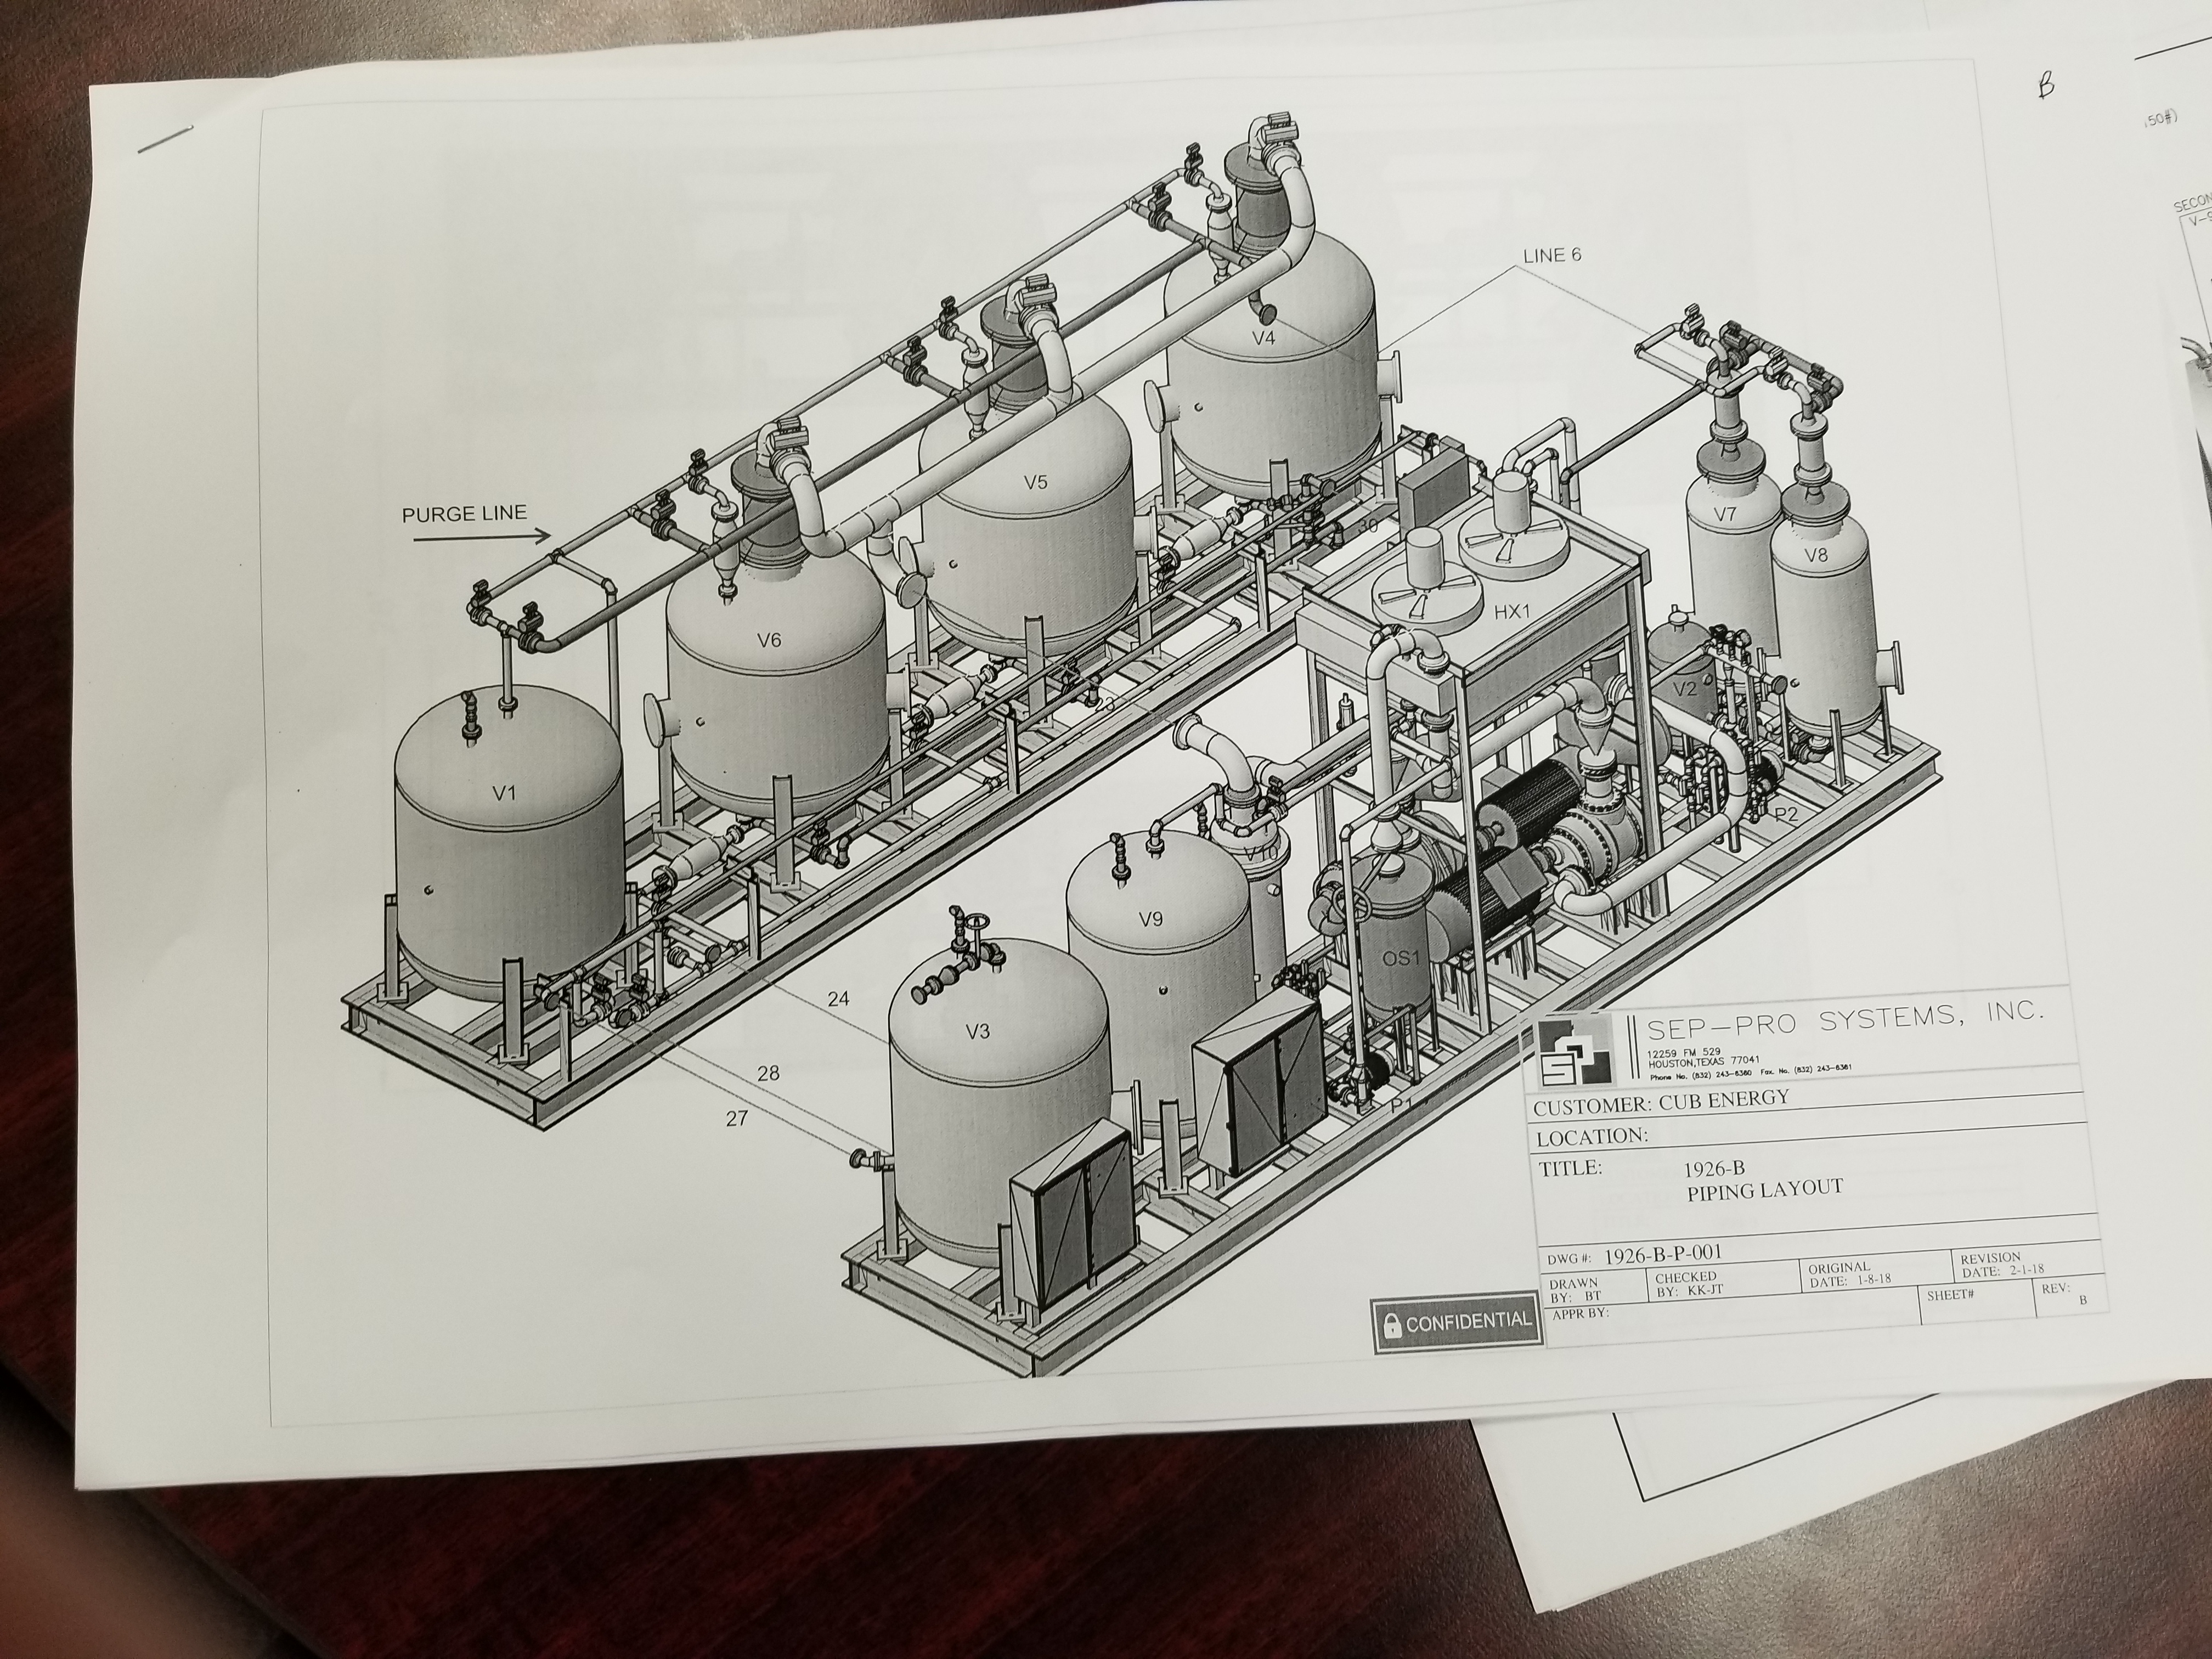 Schematic Diagram of the New Unit